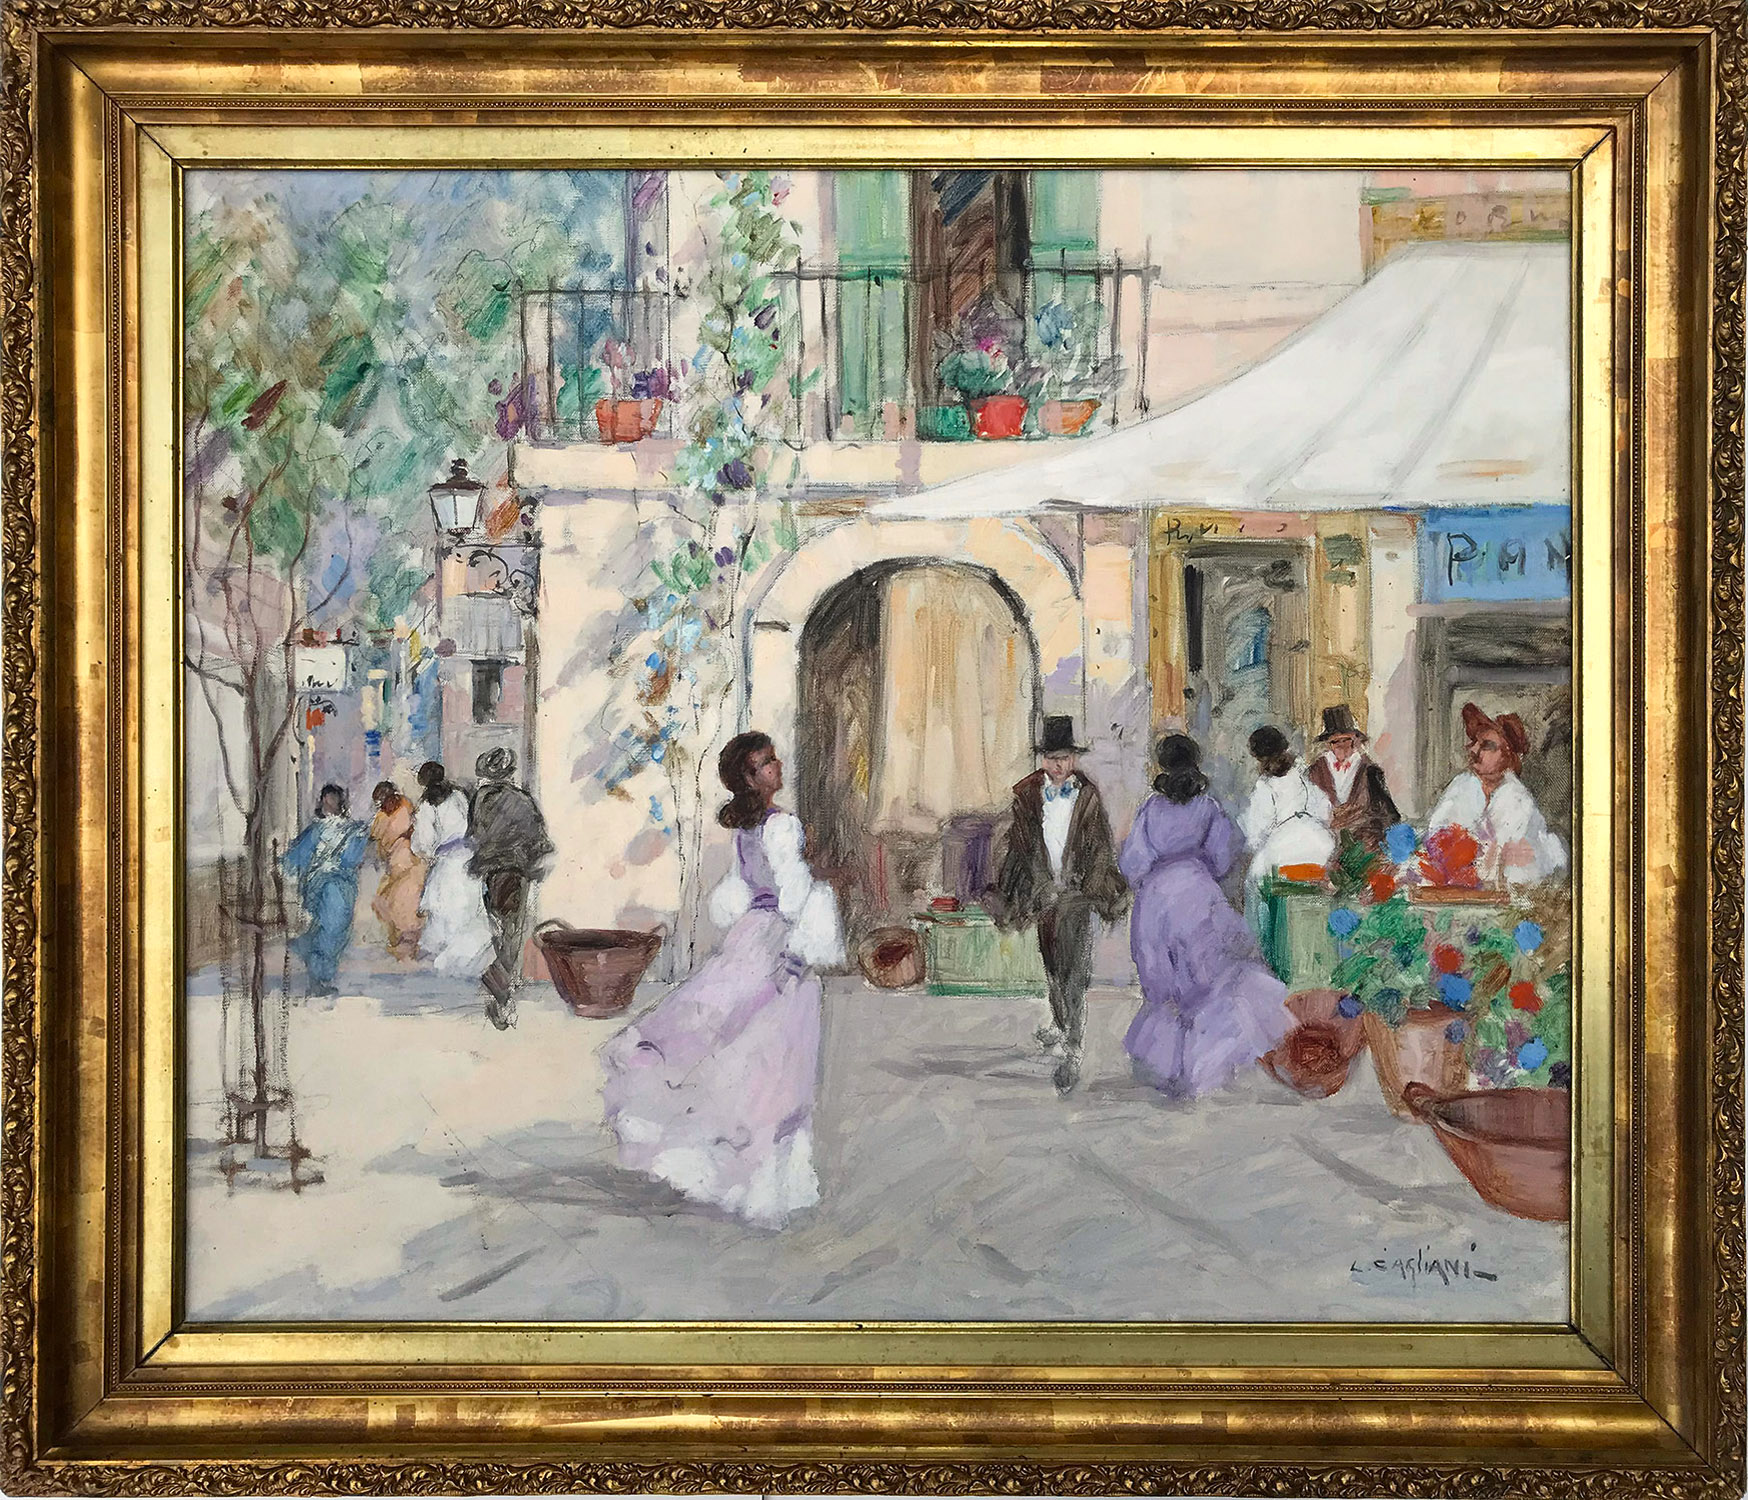 Parisian Market Scene with Figures, Early 20th Century